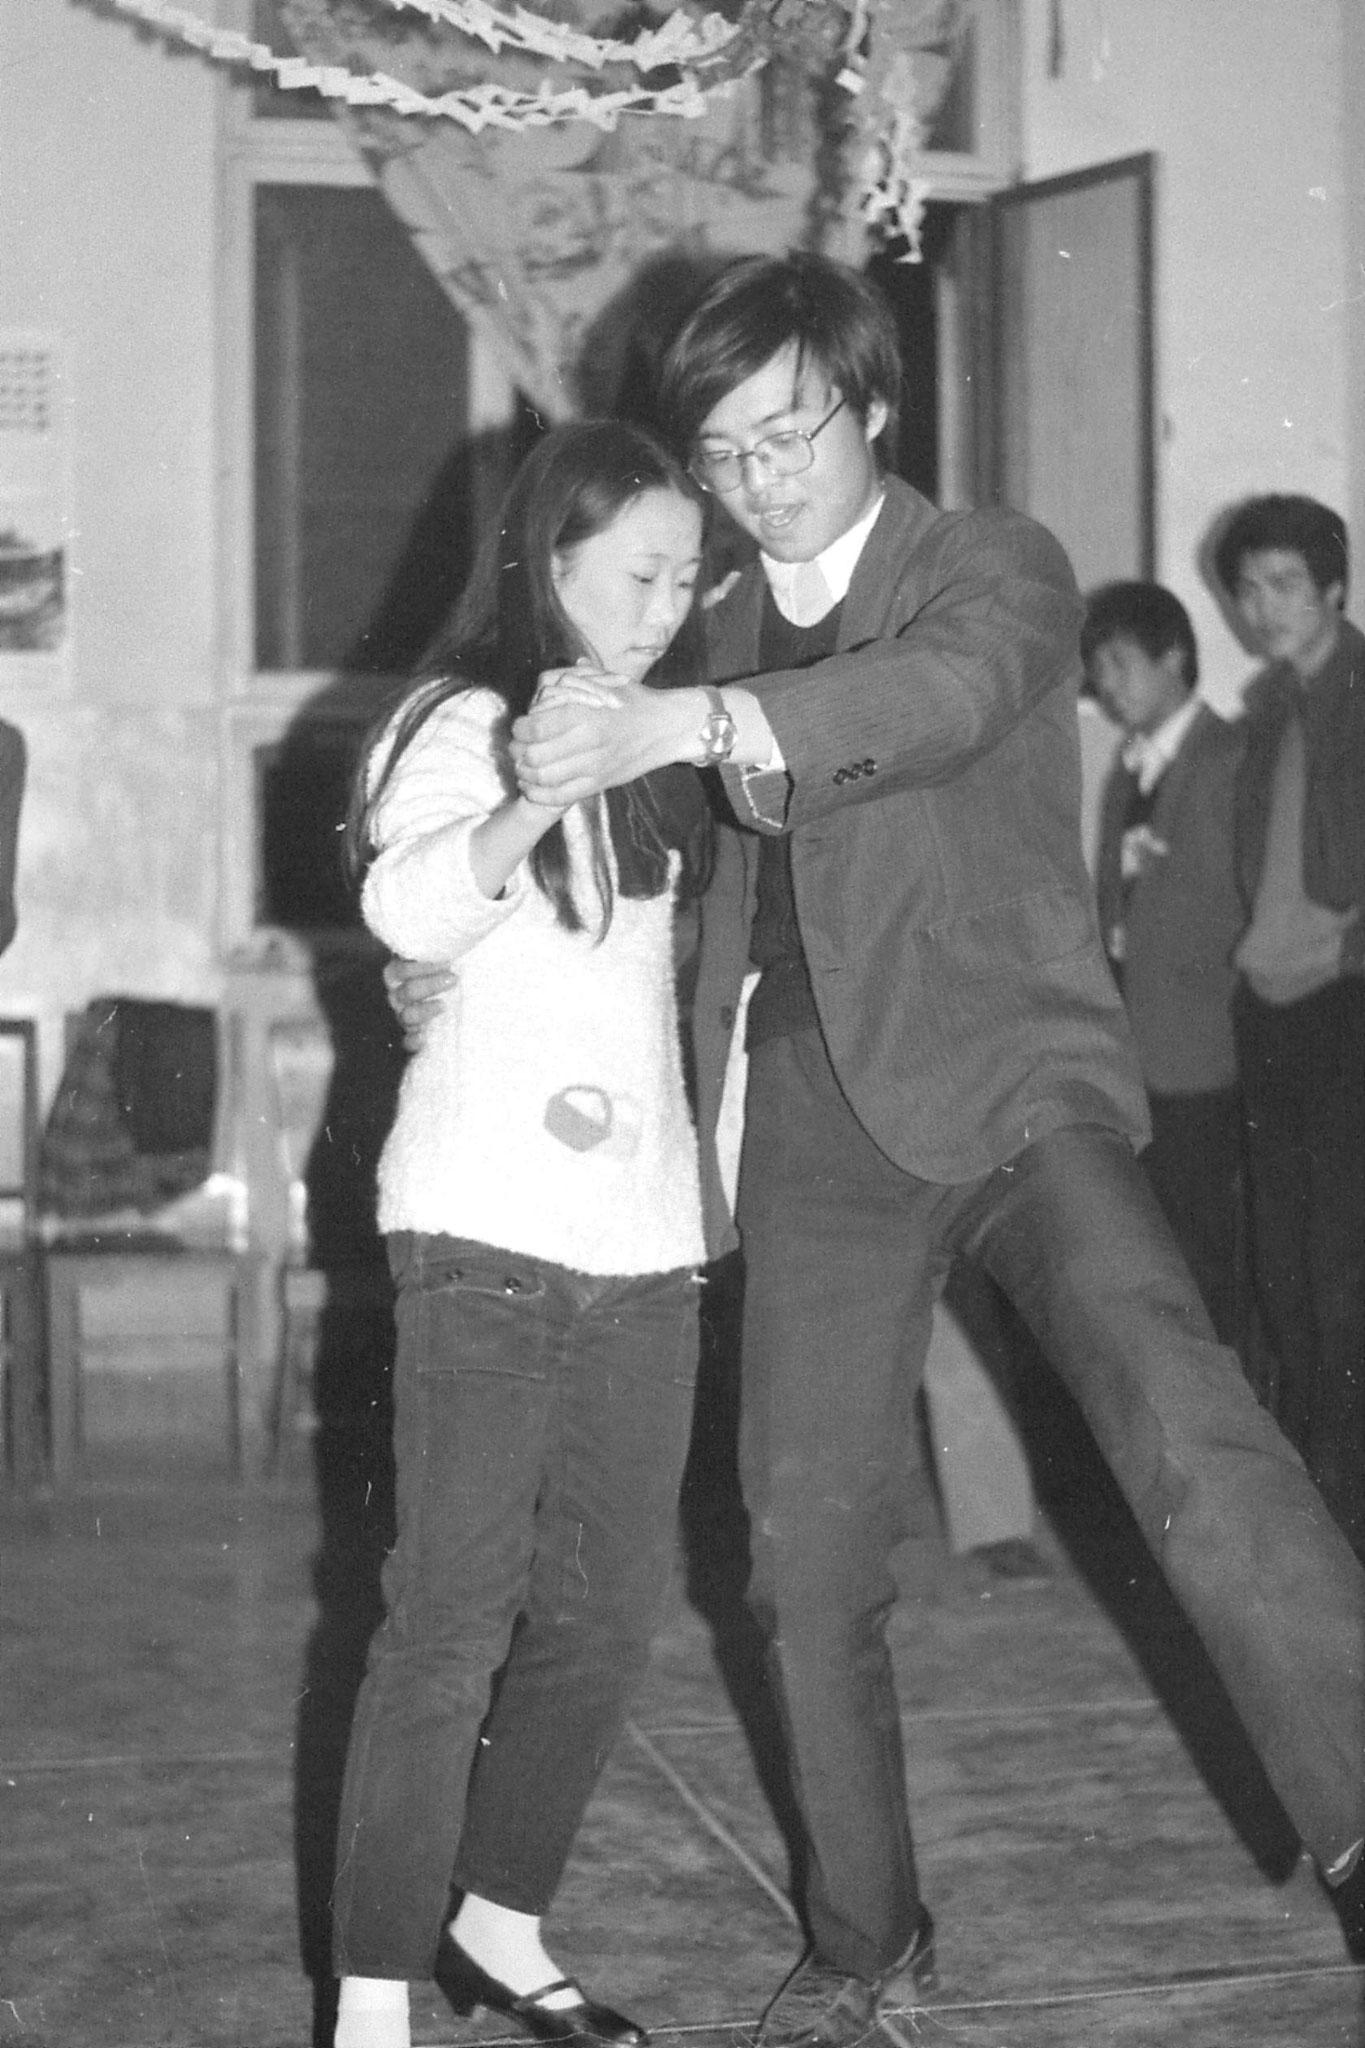 12/11/1988: 3: Party at Beijing Industrial Institute